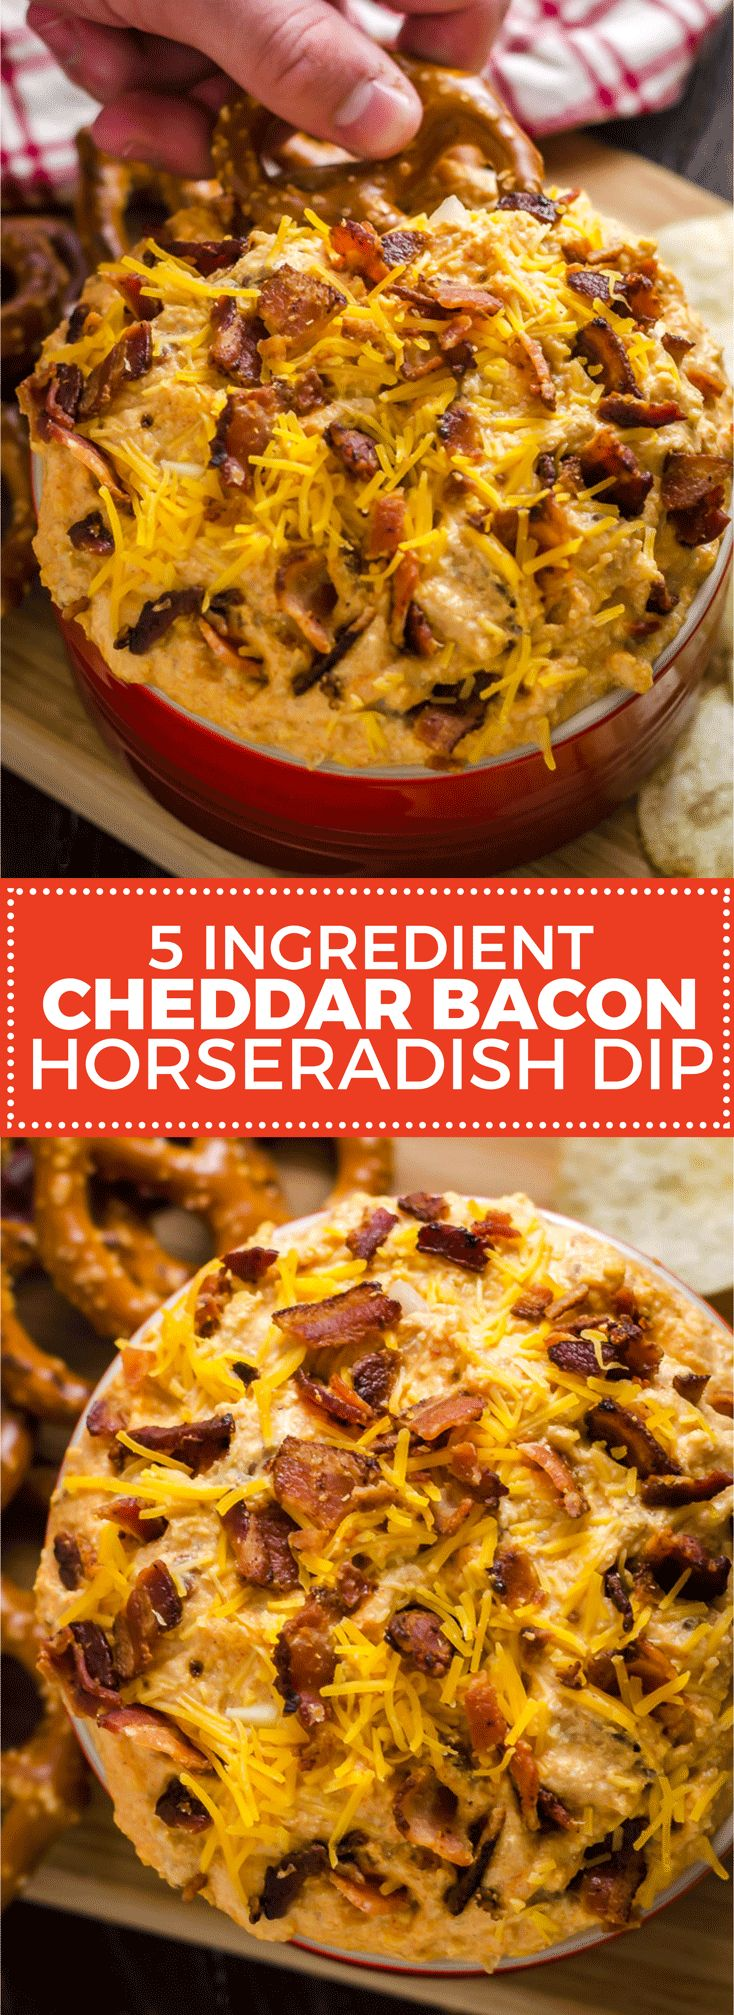 5 Ingredient Cheddar Bacon Horseradish Dip. Forget rushing around to buy food for the party, this simple dip brings it all. It uses just bacon, onions, cheese, sour cream, and horseradish, but is loaded with flavor. It makes a great spread, too! | hostthetoast.com